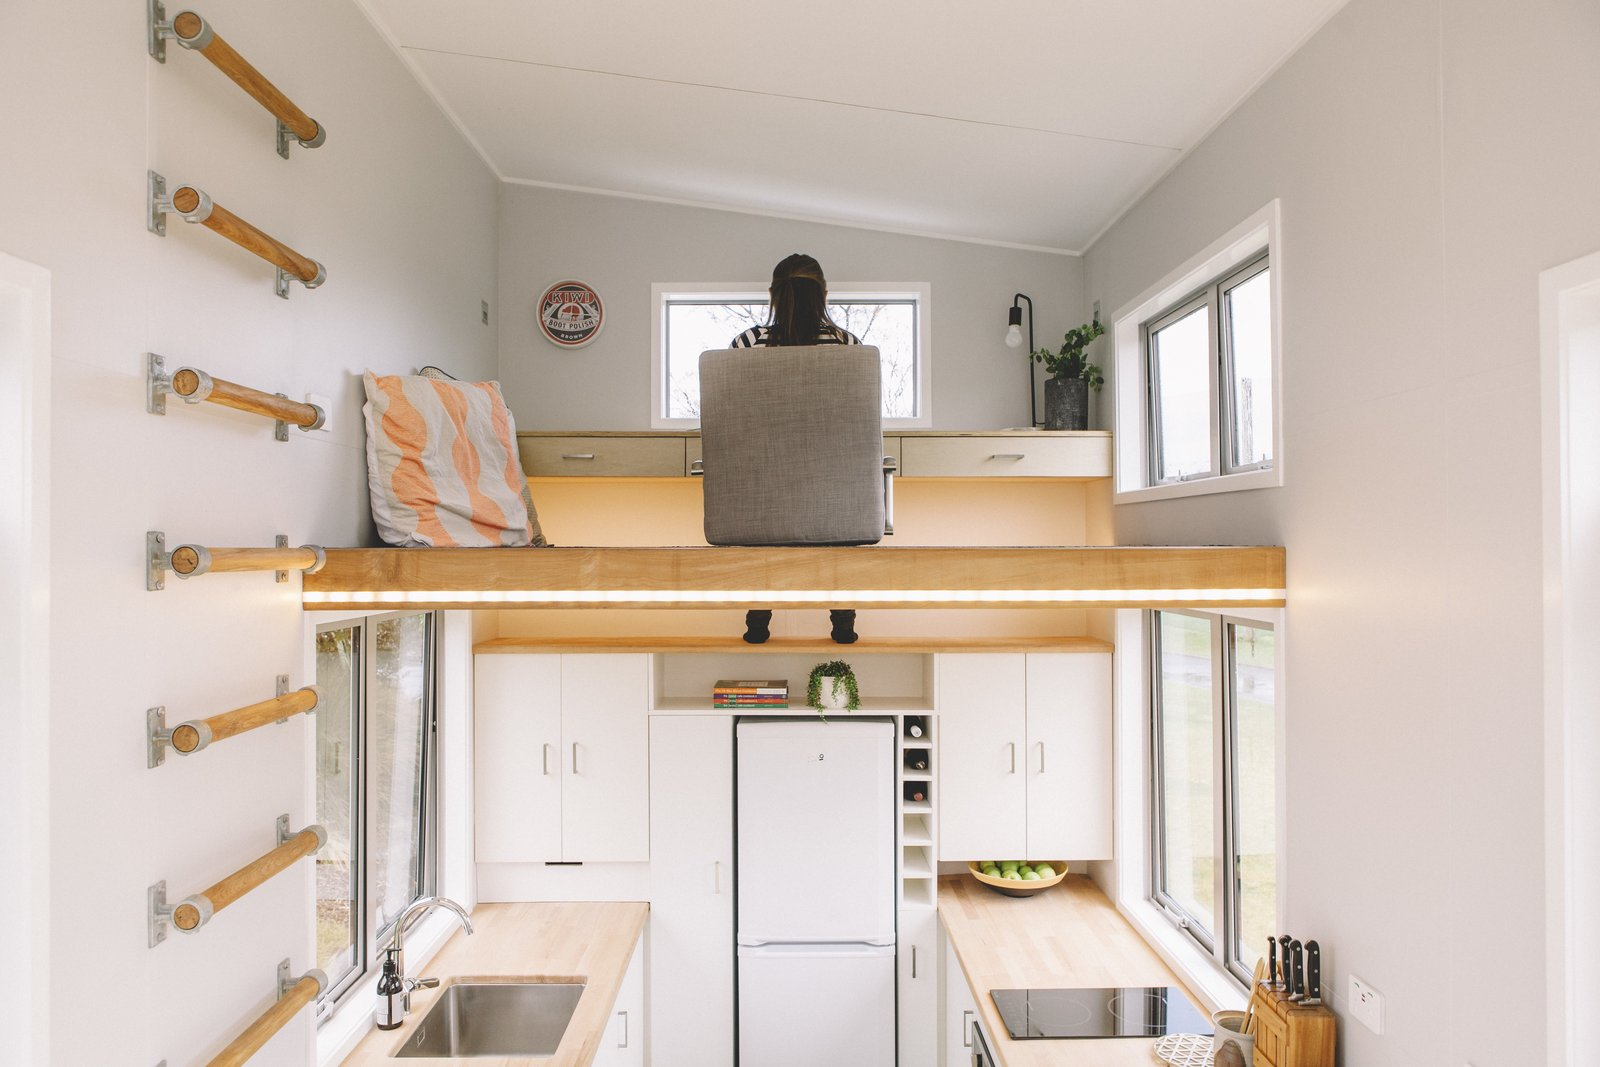 This Ingenious Tiny House Saves Space With a Lofted Office and Underfloor Storage